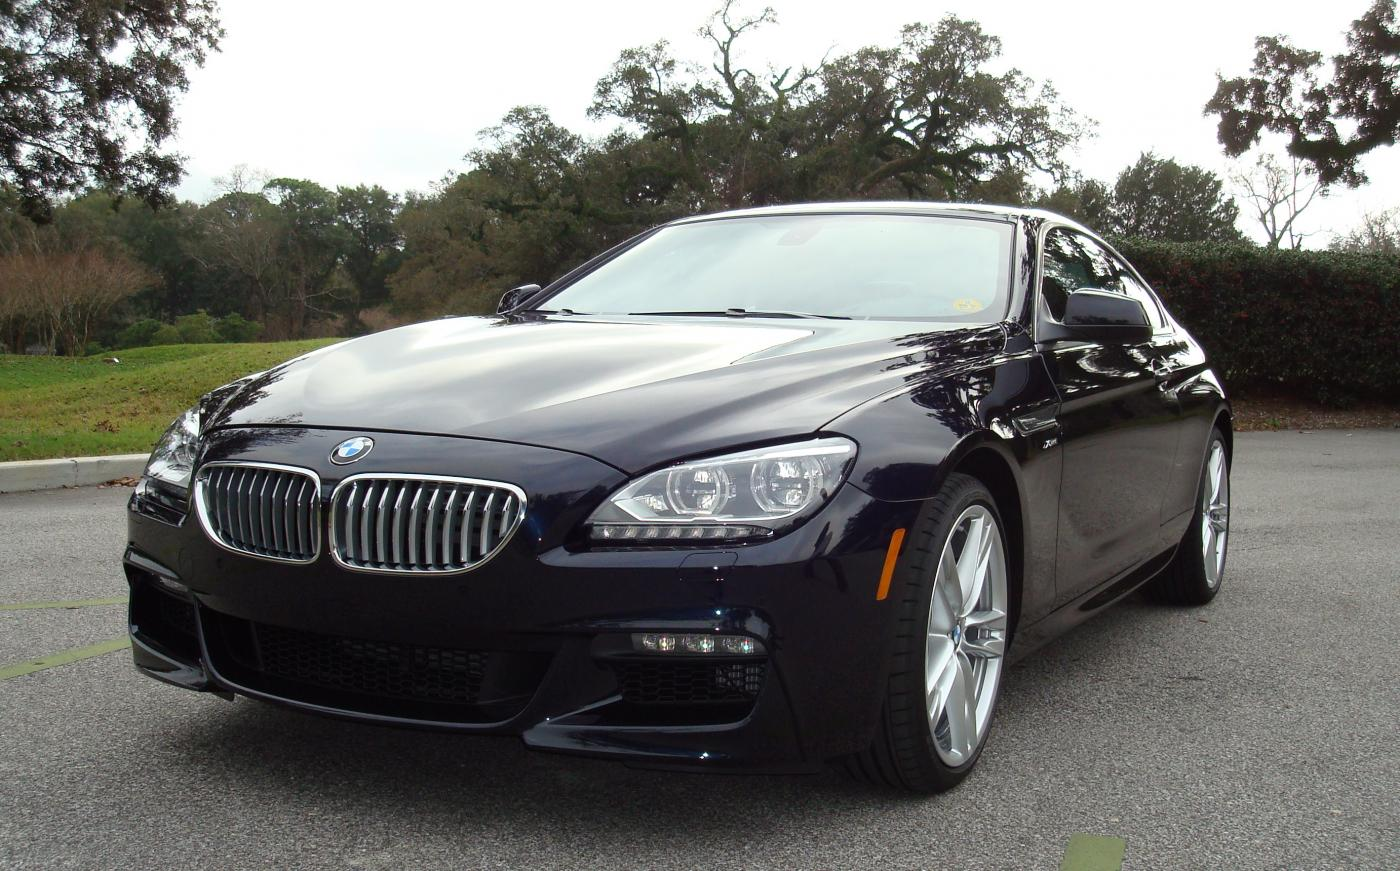 2012 bmw 6 series 650i coupe black sapphire metallic color black - 2012 Bmw 6 Series 650i Coupe Black Sapphire Metallic Color Black 37